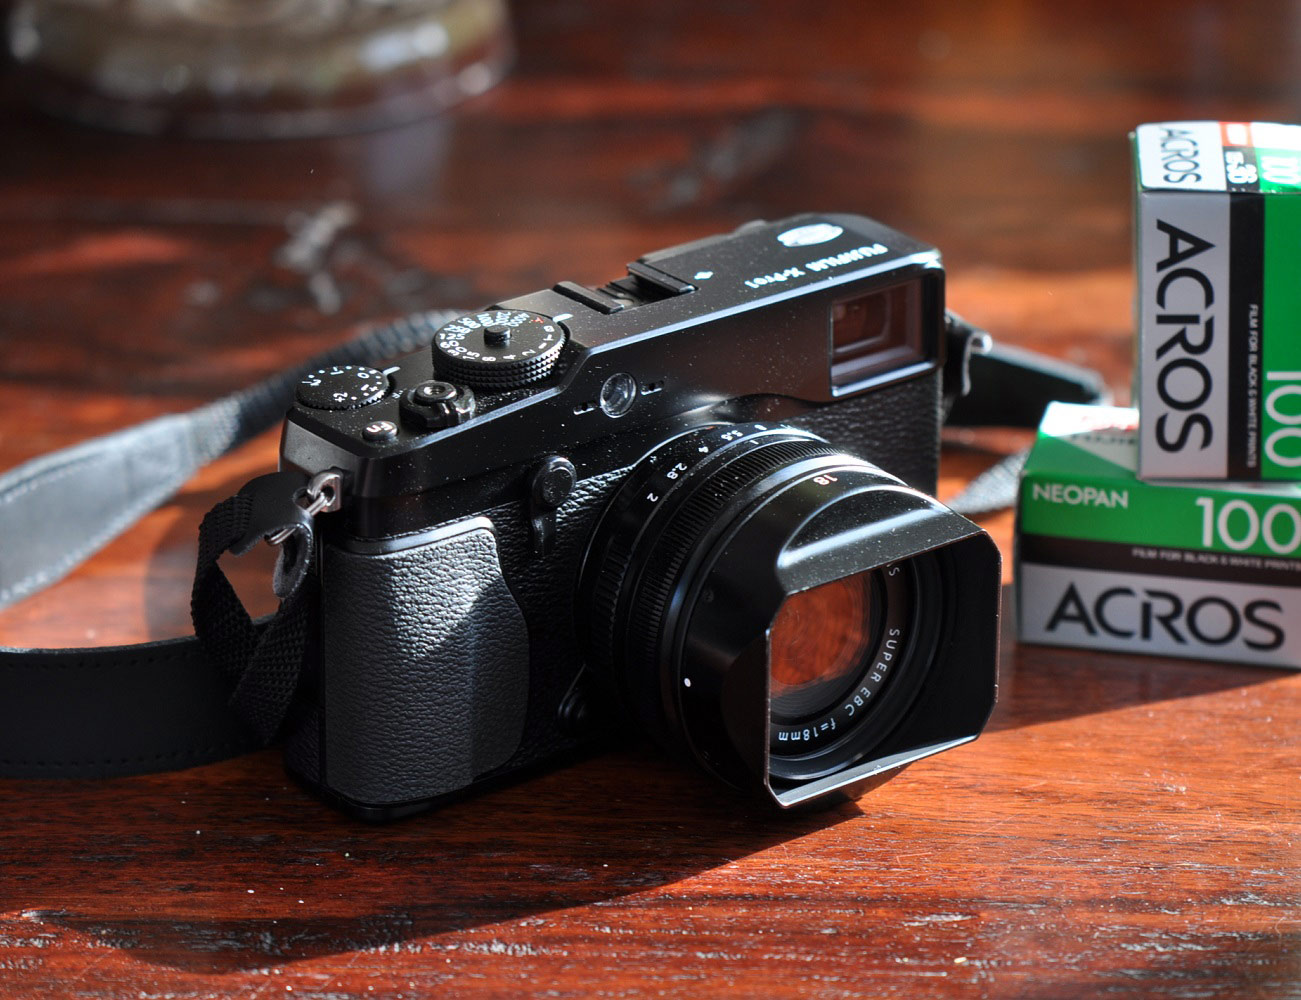 Fujifilm X Pro 1 : fuji x pro 1 camera gadget flow ~ Watch28wear.com Haus und Dekorationen